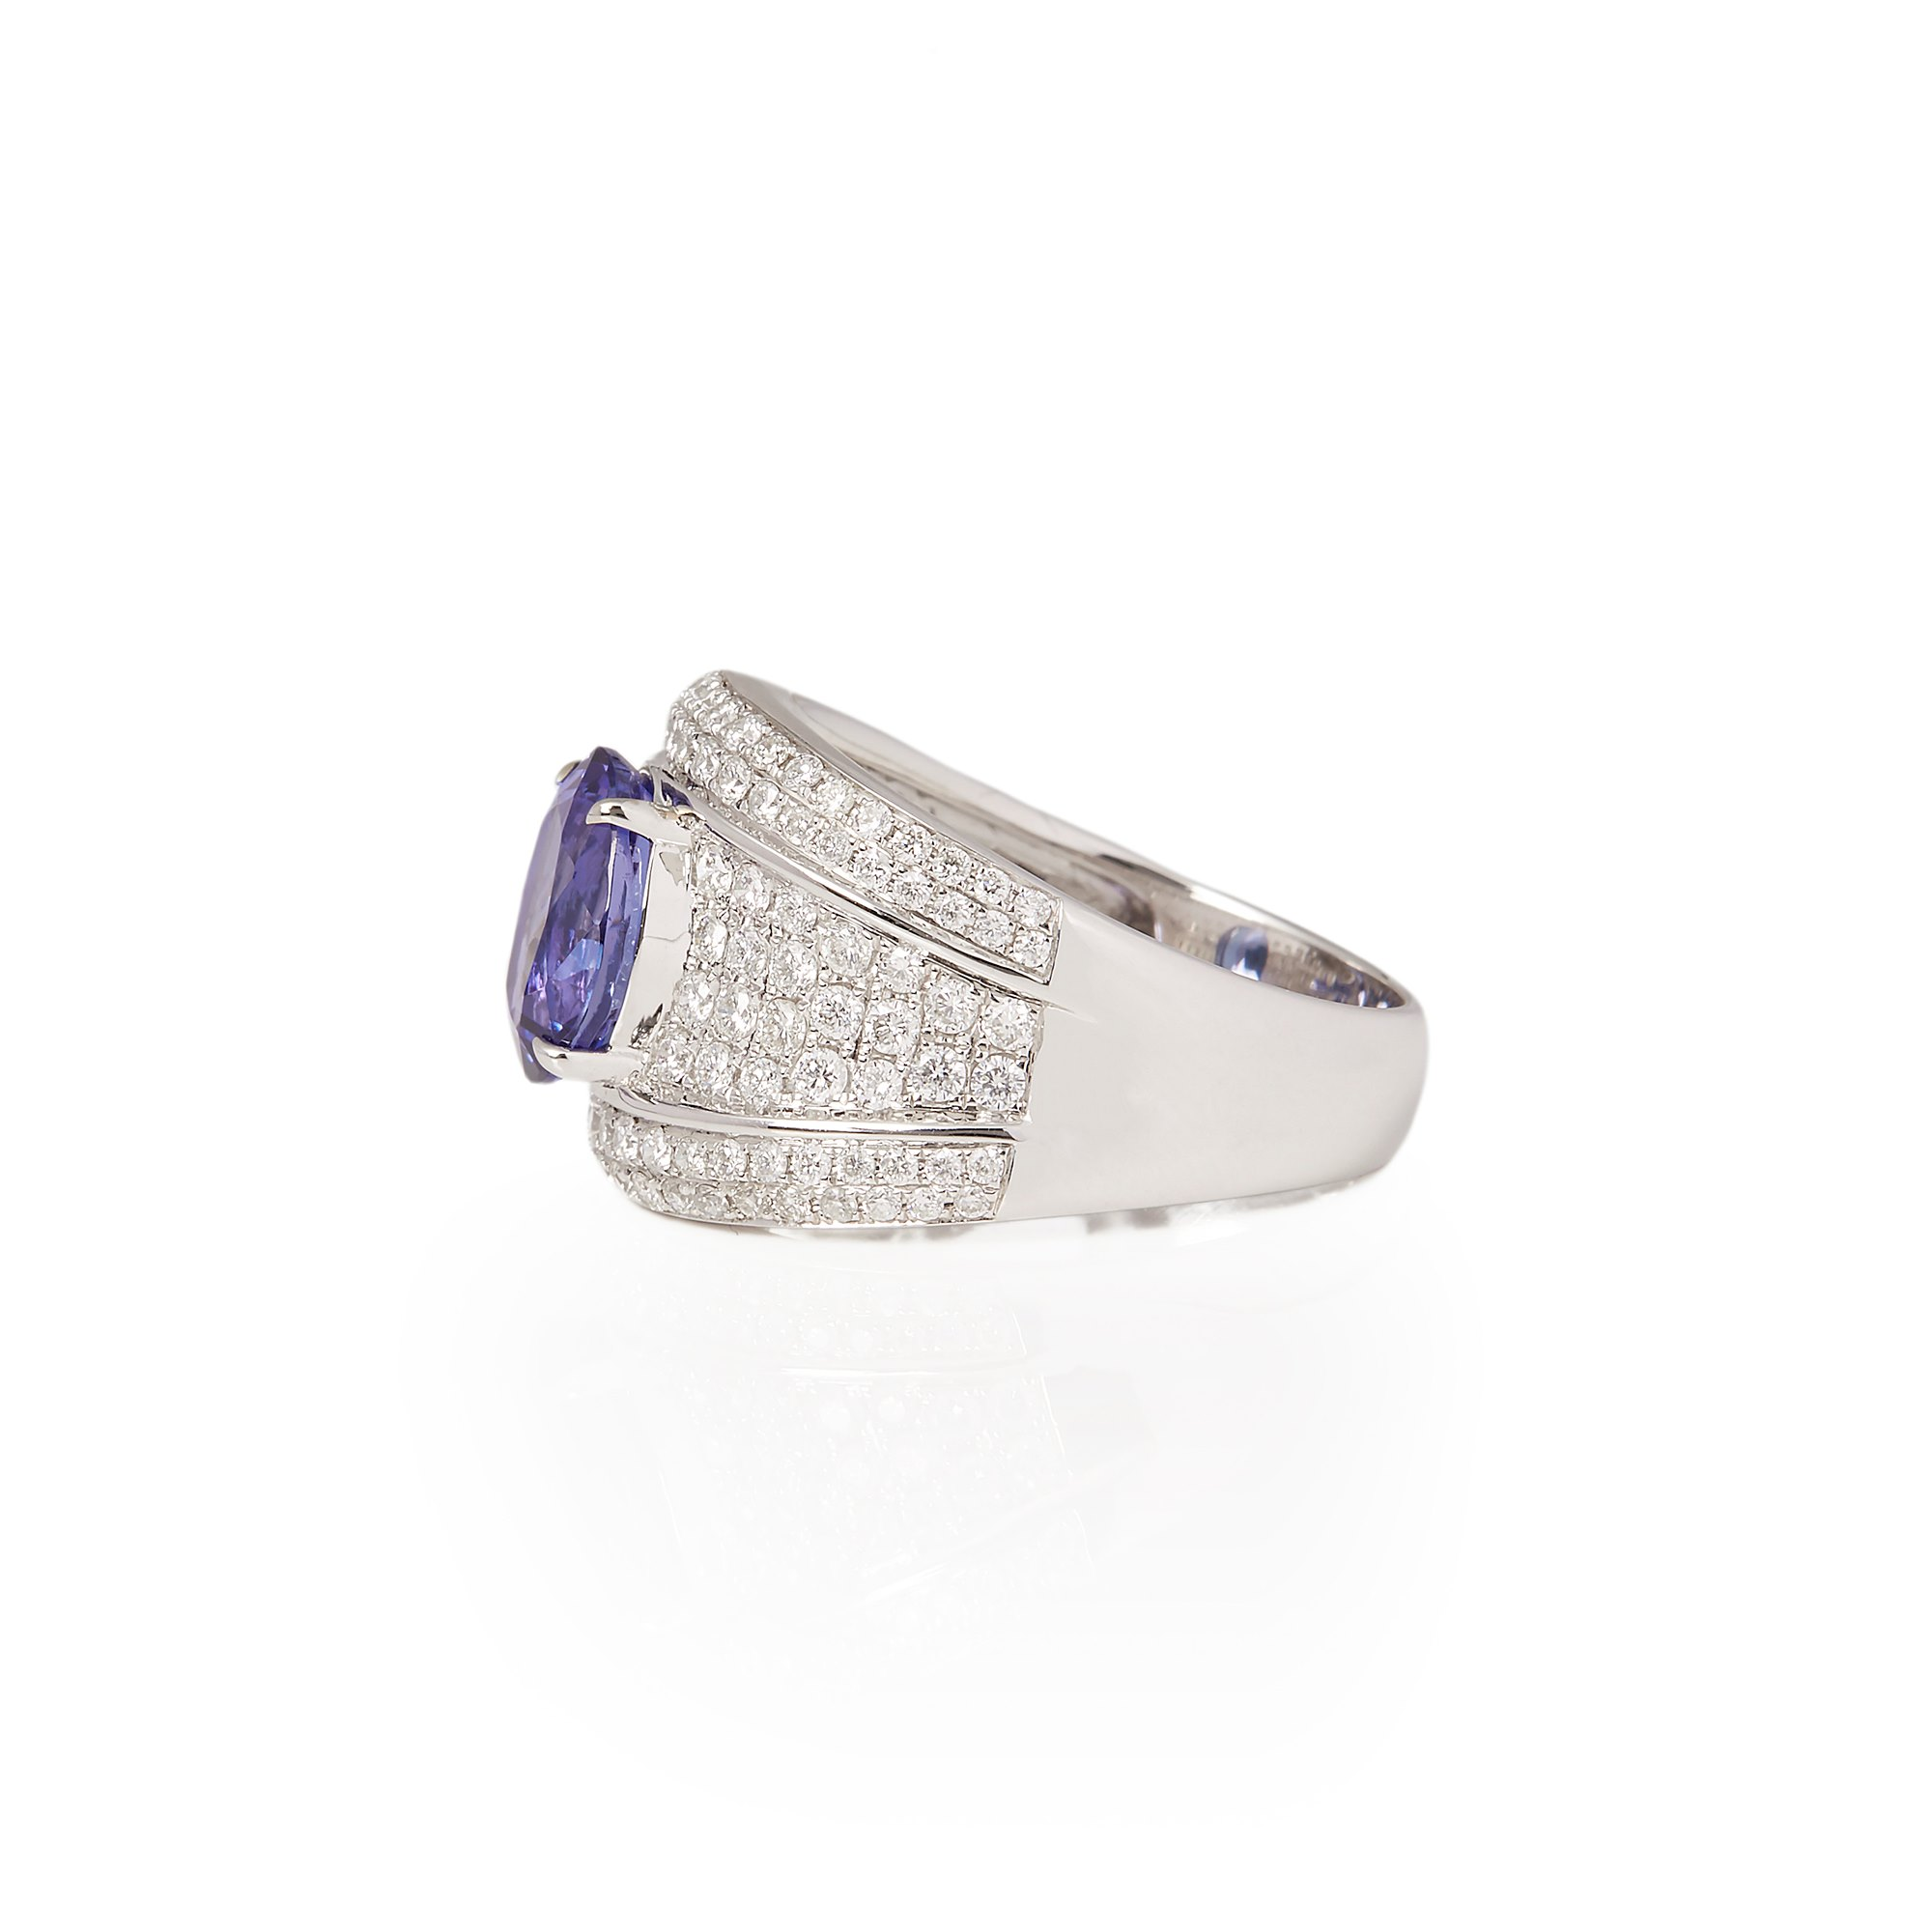 David Jerome Certified 2.87ct Oval Cut Tanzanite and Diamond 18ct gold Ring